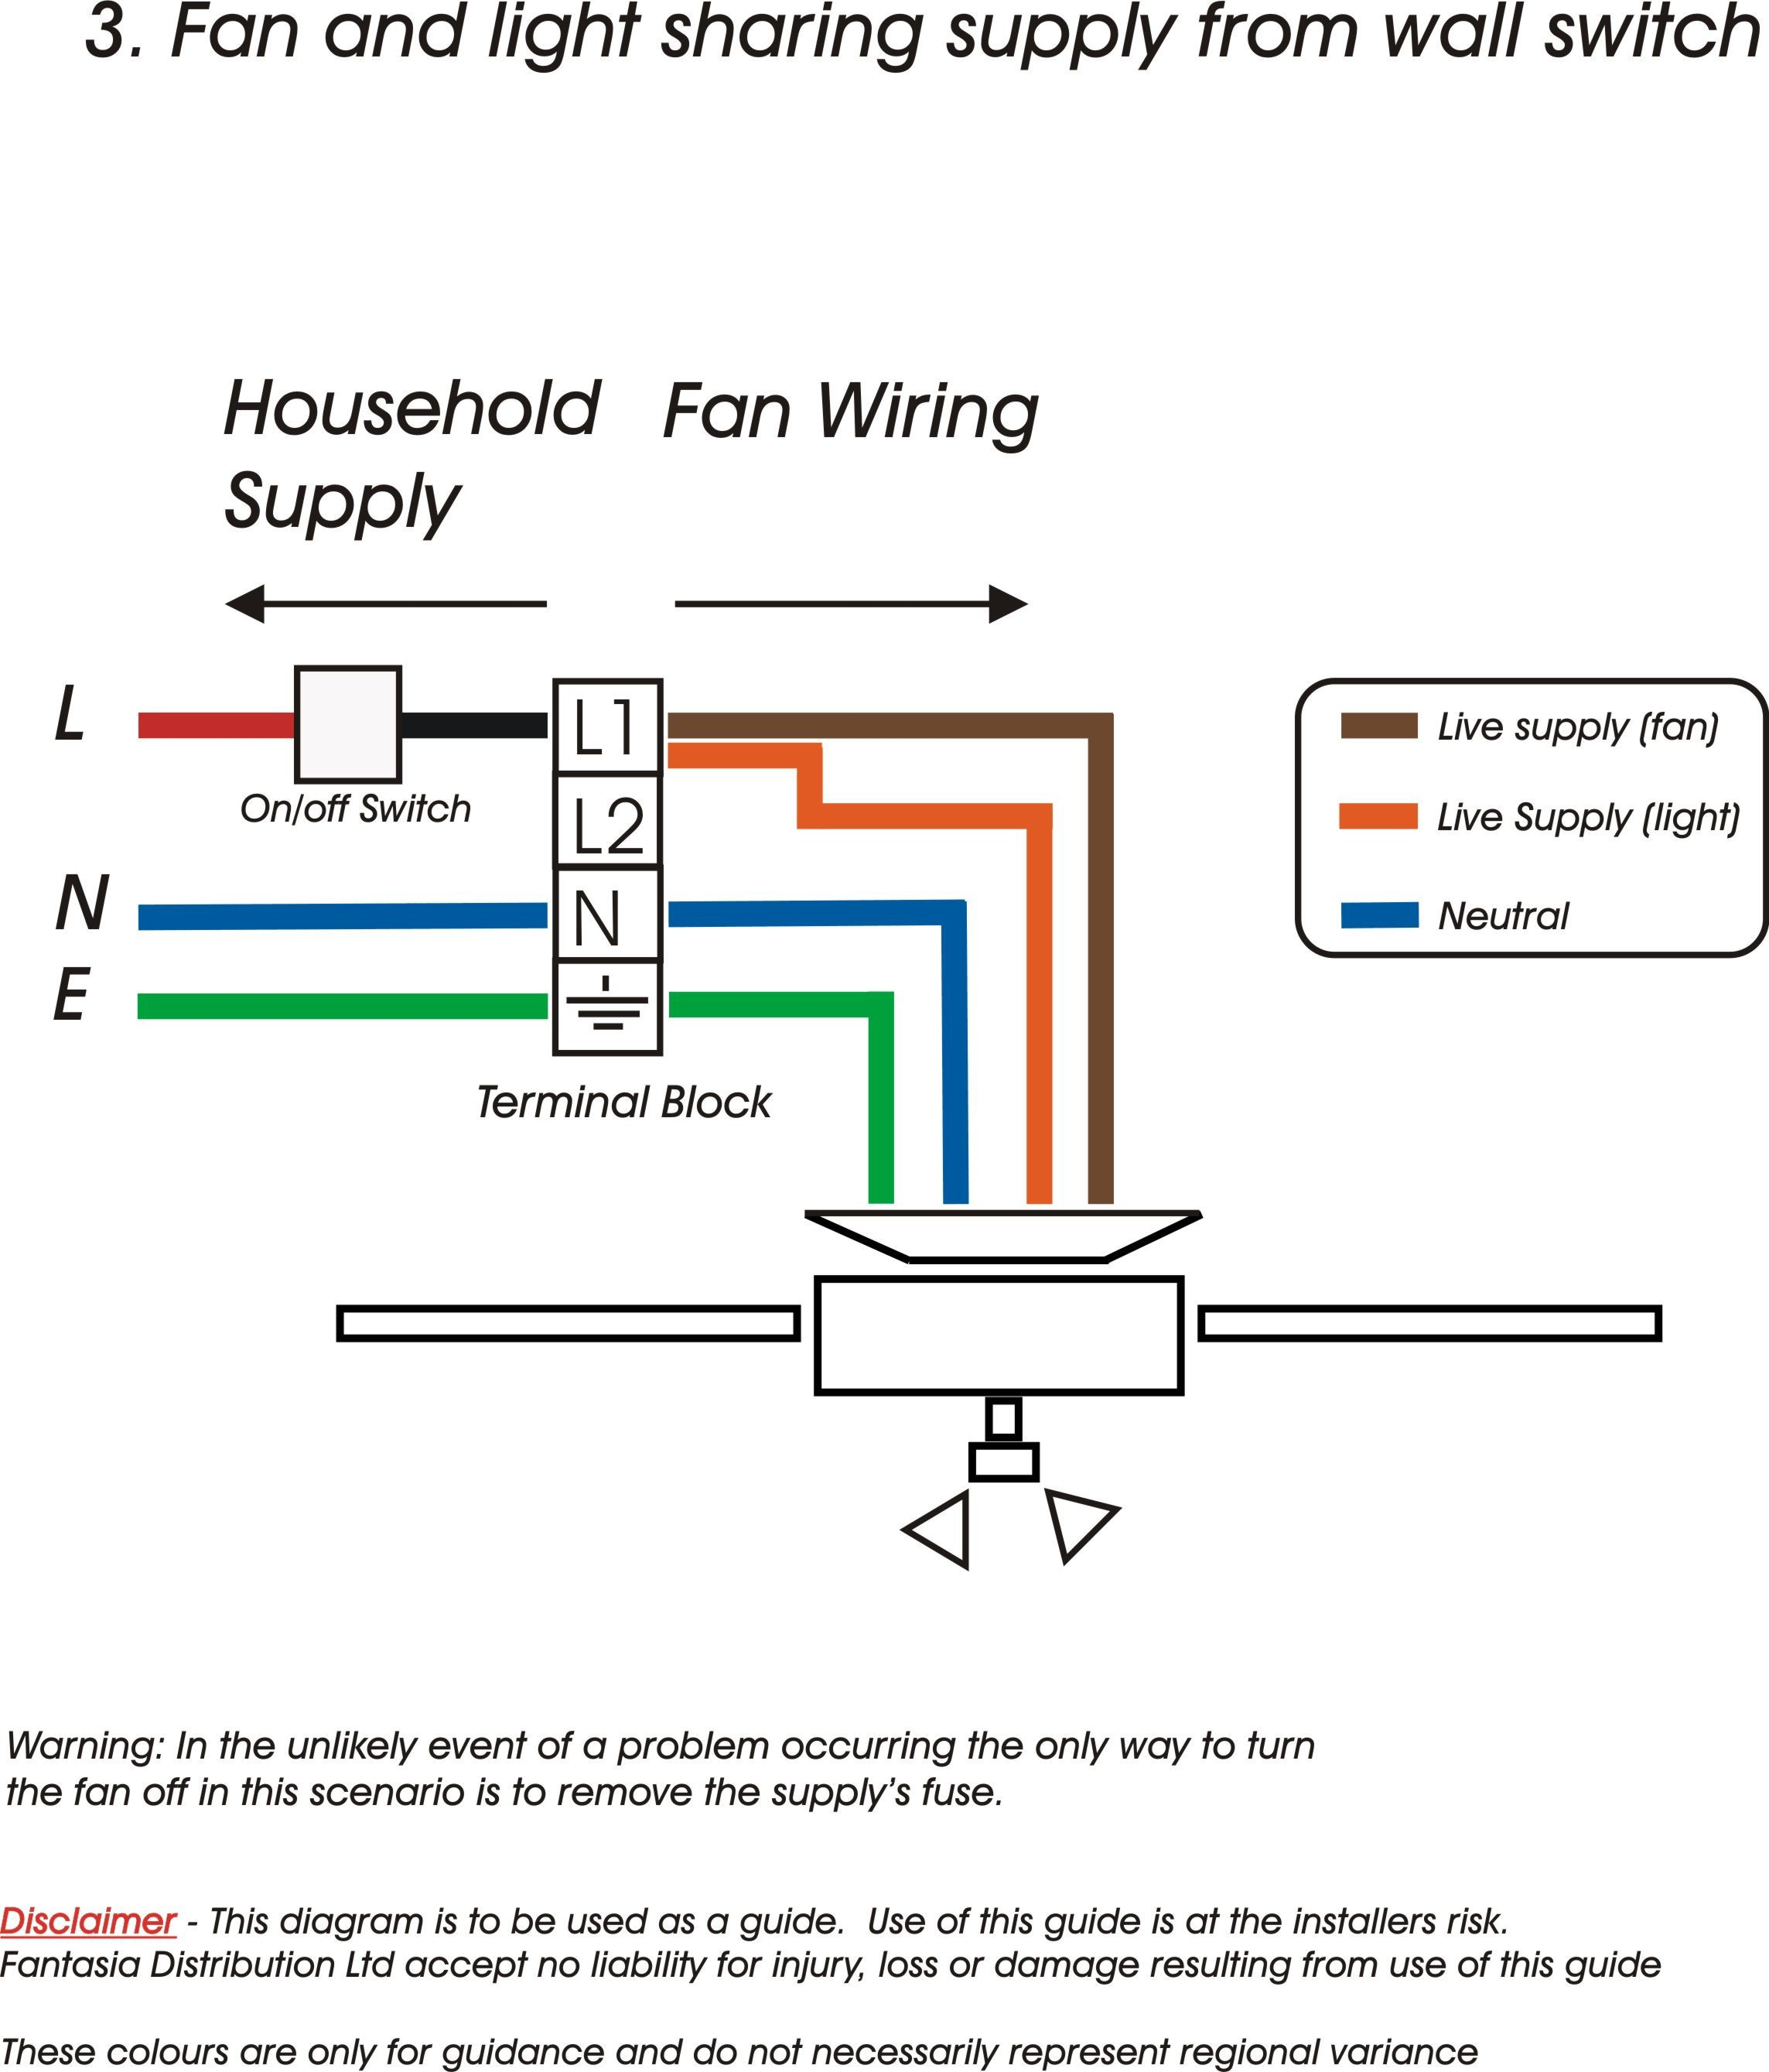 4 wire ceiling fan switch wiring diagram Download-Elegant 4 Wire Ceiling Fan Switch Wiring Diagram Inside 8-t